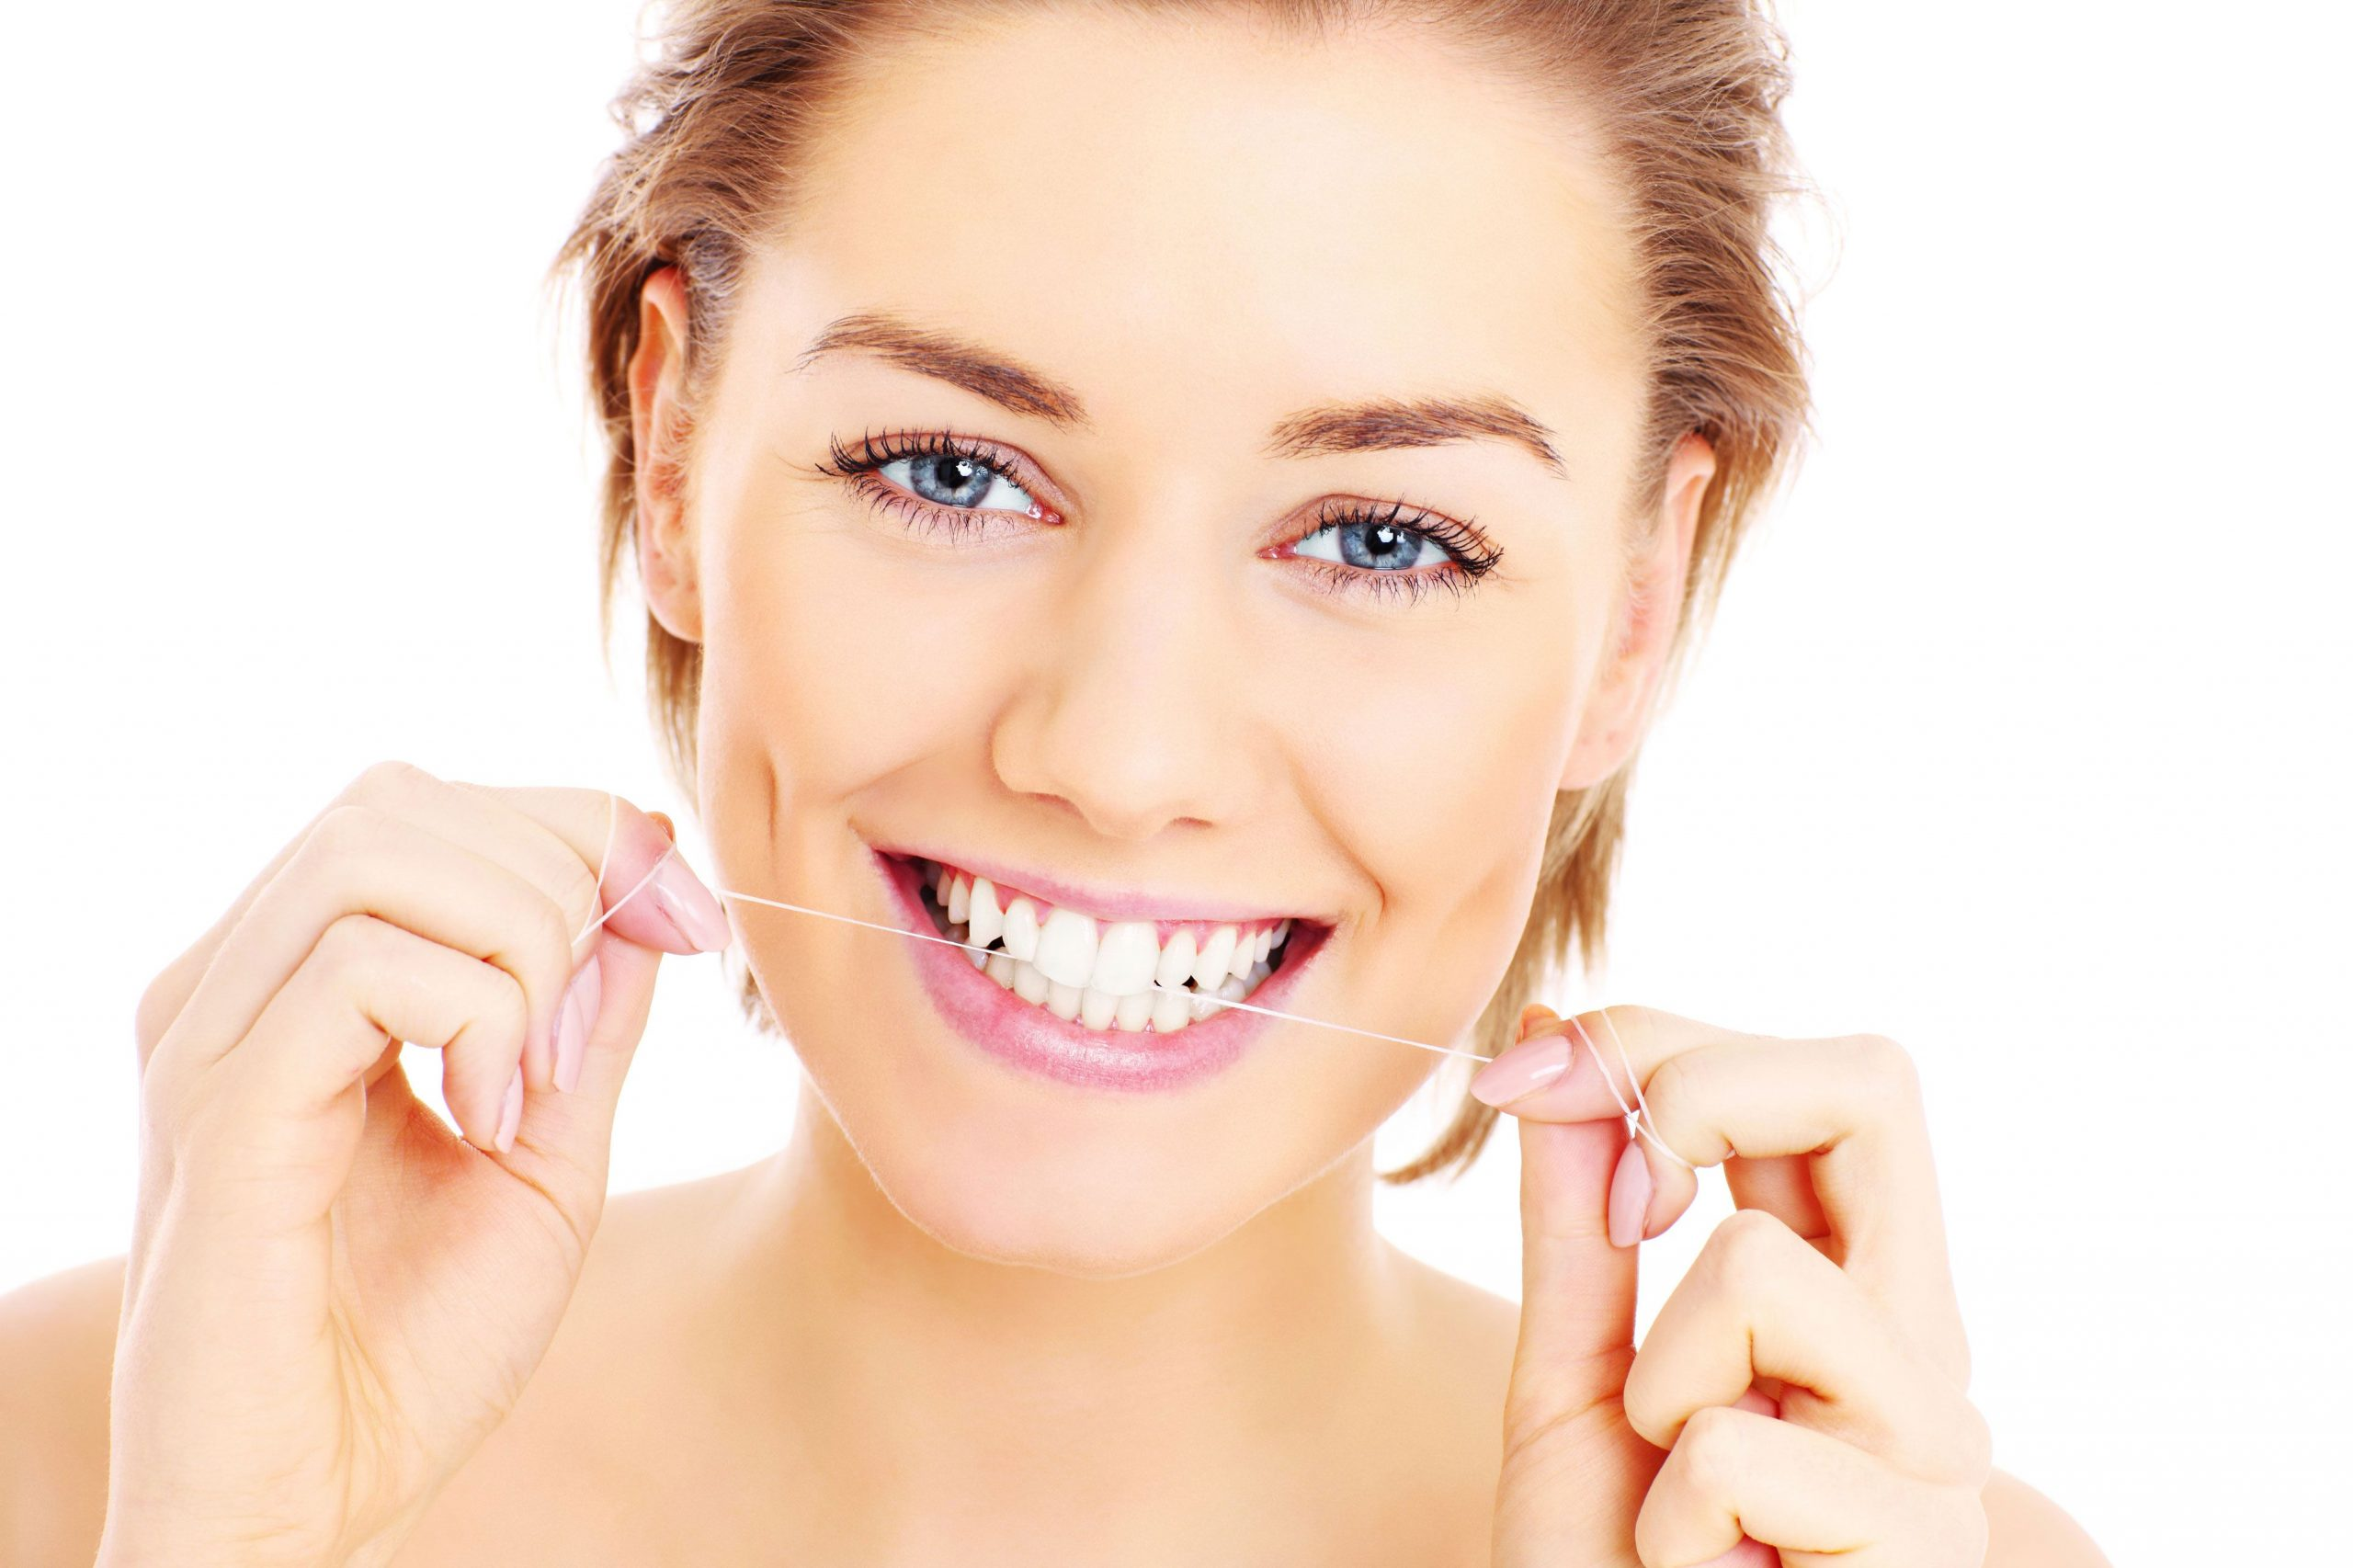 Anchorage AK Dentist | Only Floss The Teeth You Want To Keep